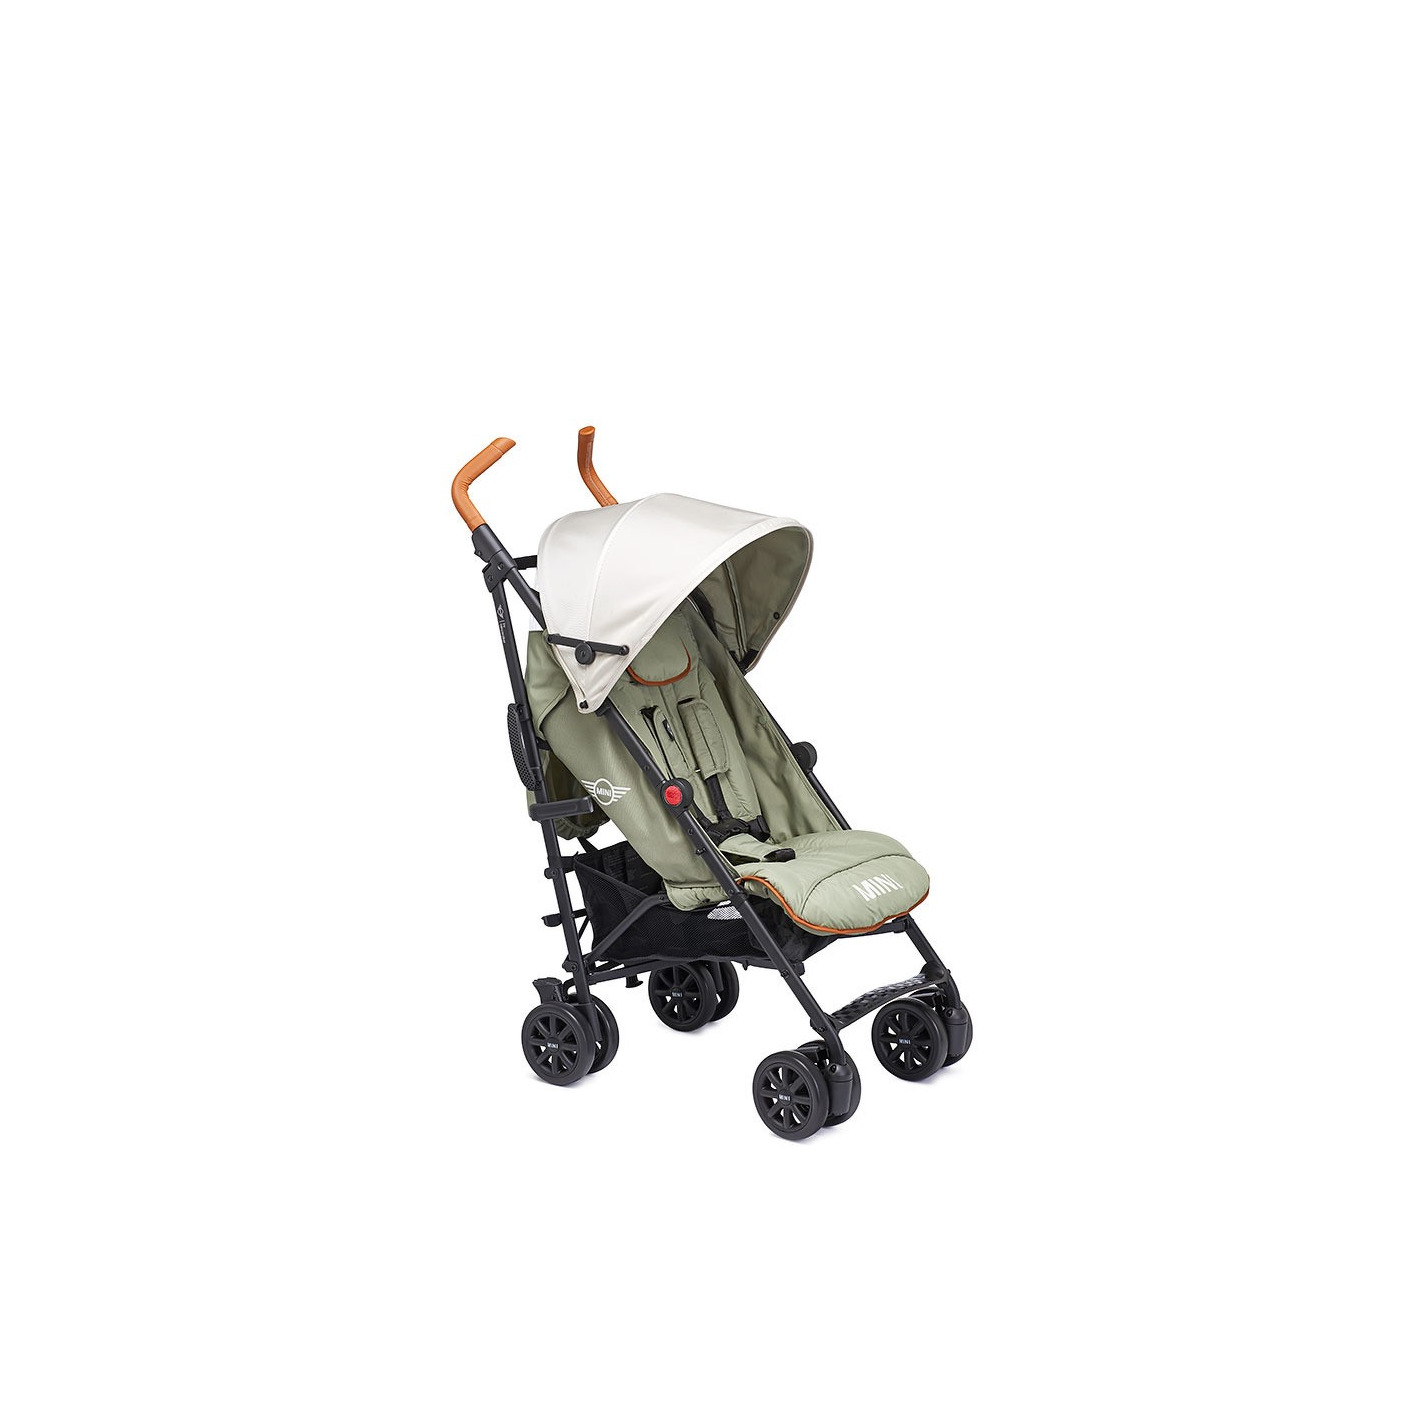 Easywalker Buggy Greenland Easywalker Mini By Easywalker Buggy Wózek Spacerowy Z